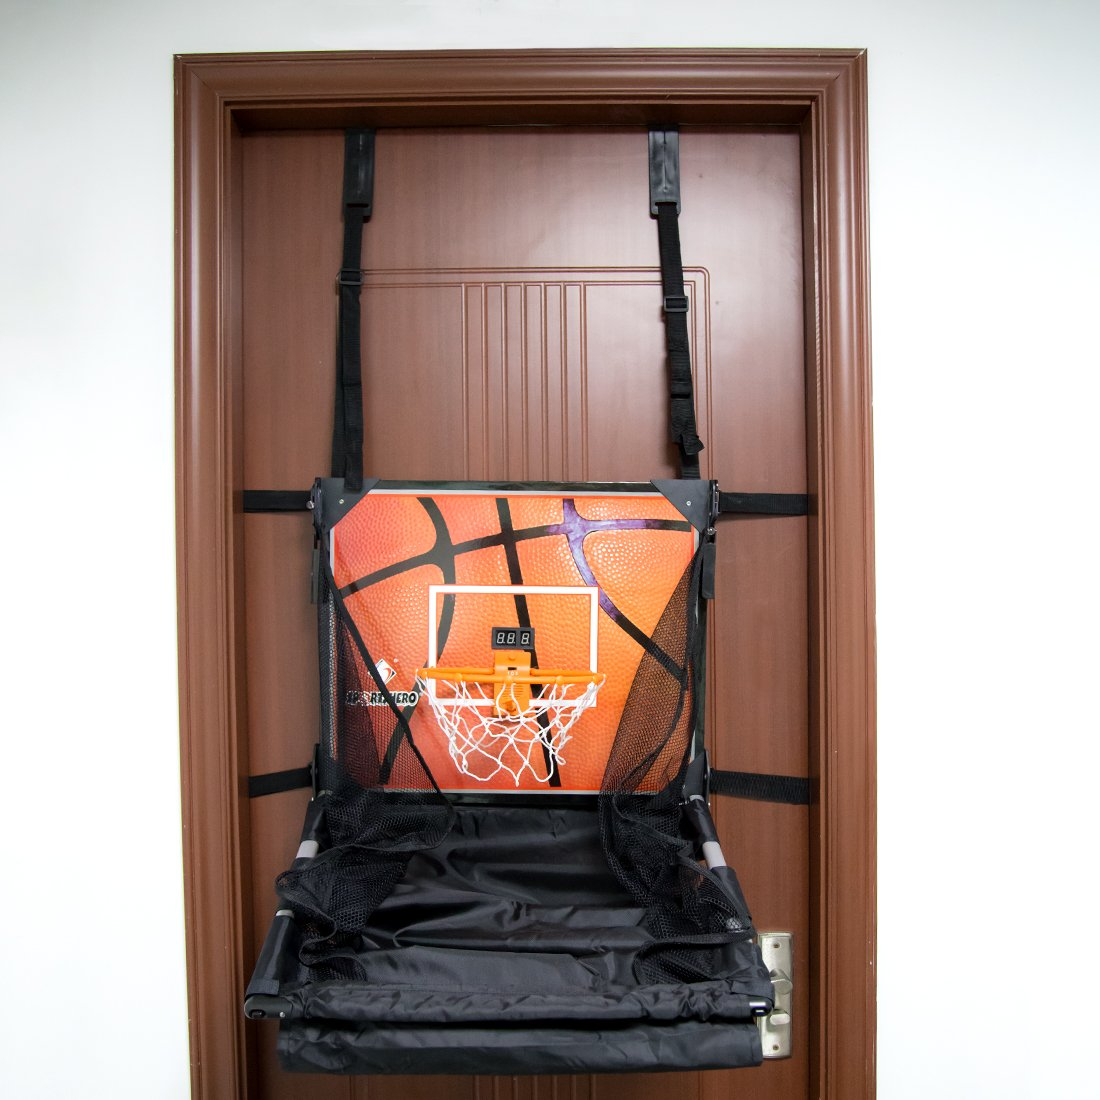 Basketball Shooting Machine PINCHUANGHUI Door Hanging Automatic Scoring Basketball Shooting Machine Foldable Shooting Hoop - Main Black by PINCHUANGHUI (Image #4)